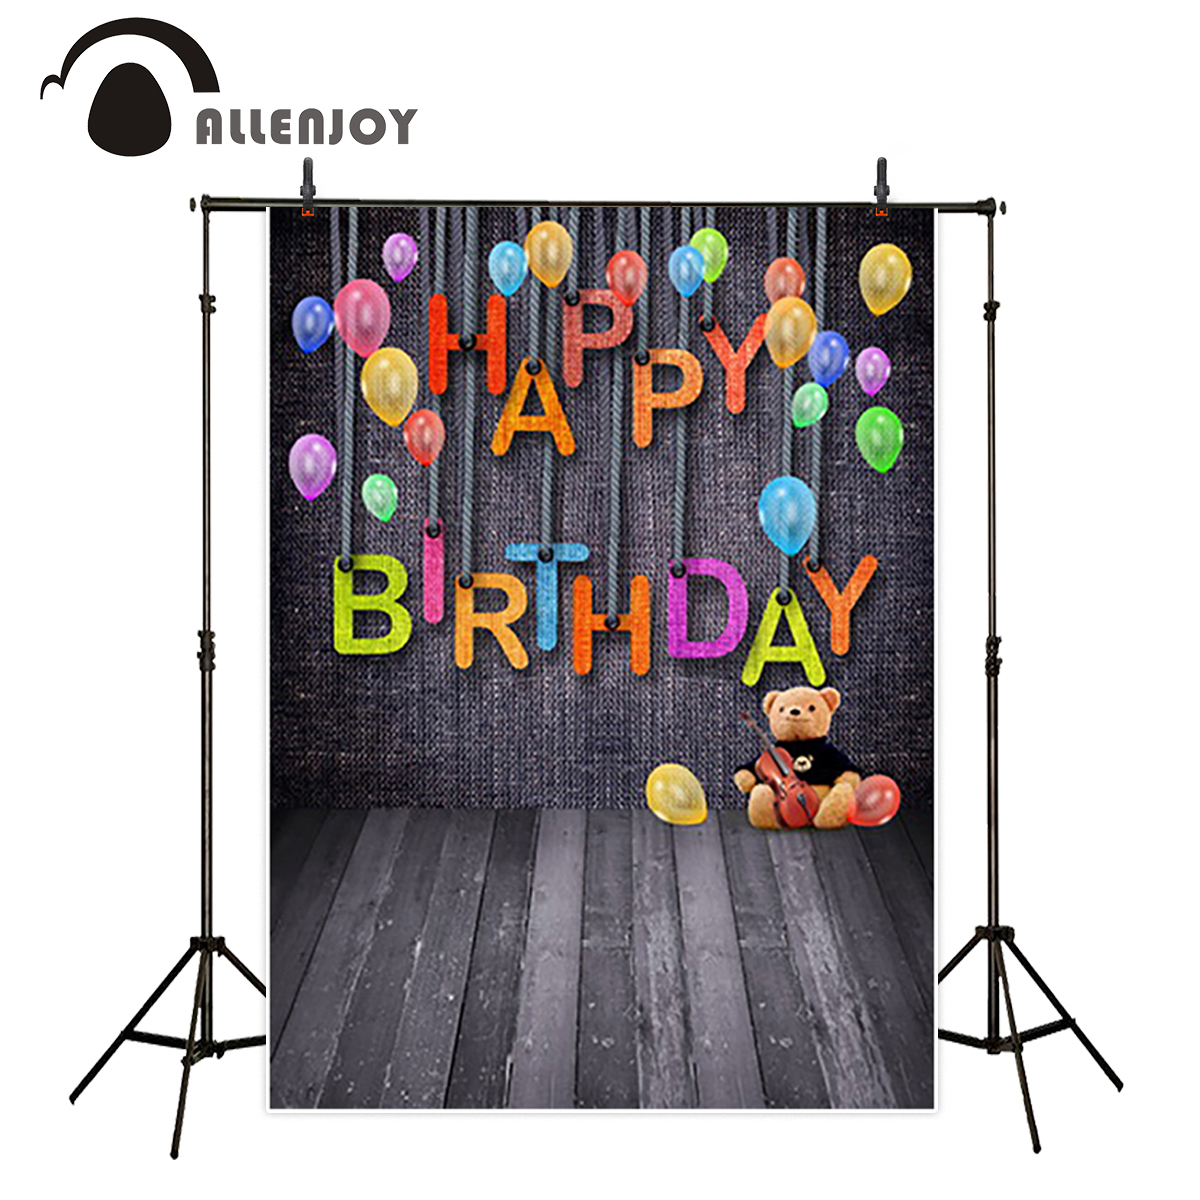 Allenjoy Birthday Celebration backdrop Black Balloon Cowboy birthday backgrounds for photo studio new arrival Personal customize new arrival background fundo hydrant balloon flowers 600cm 300cm width backgrounds lk 2982